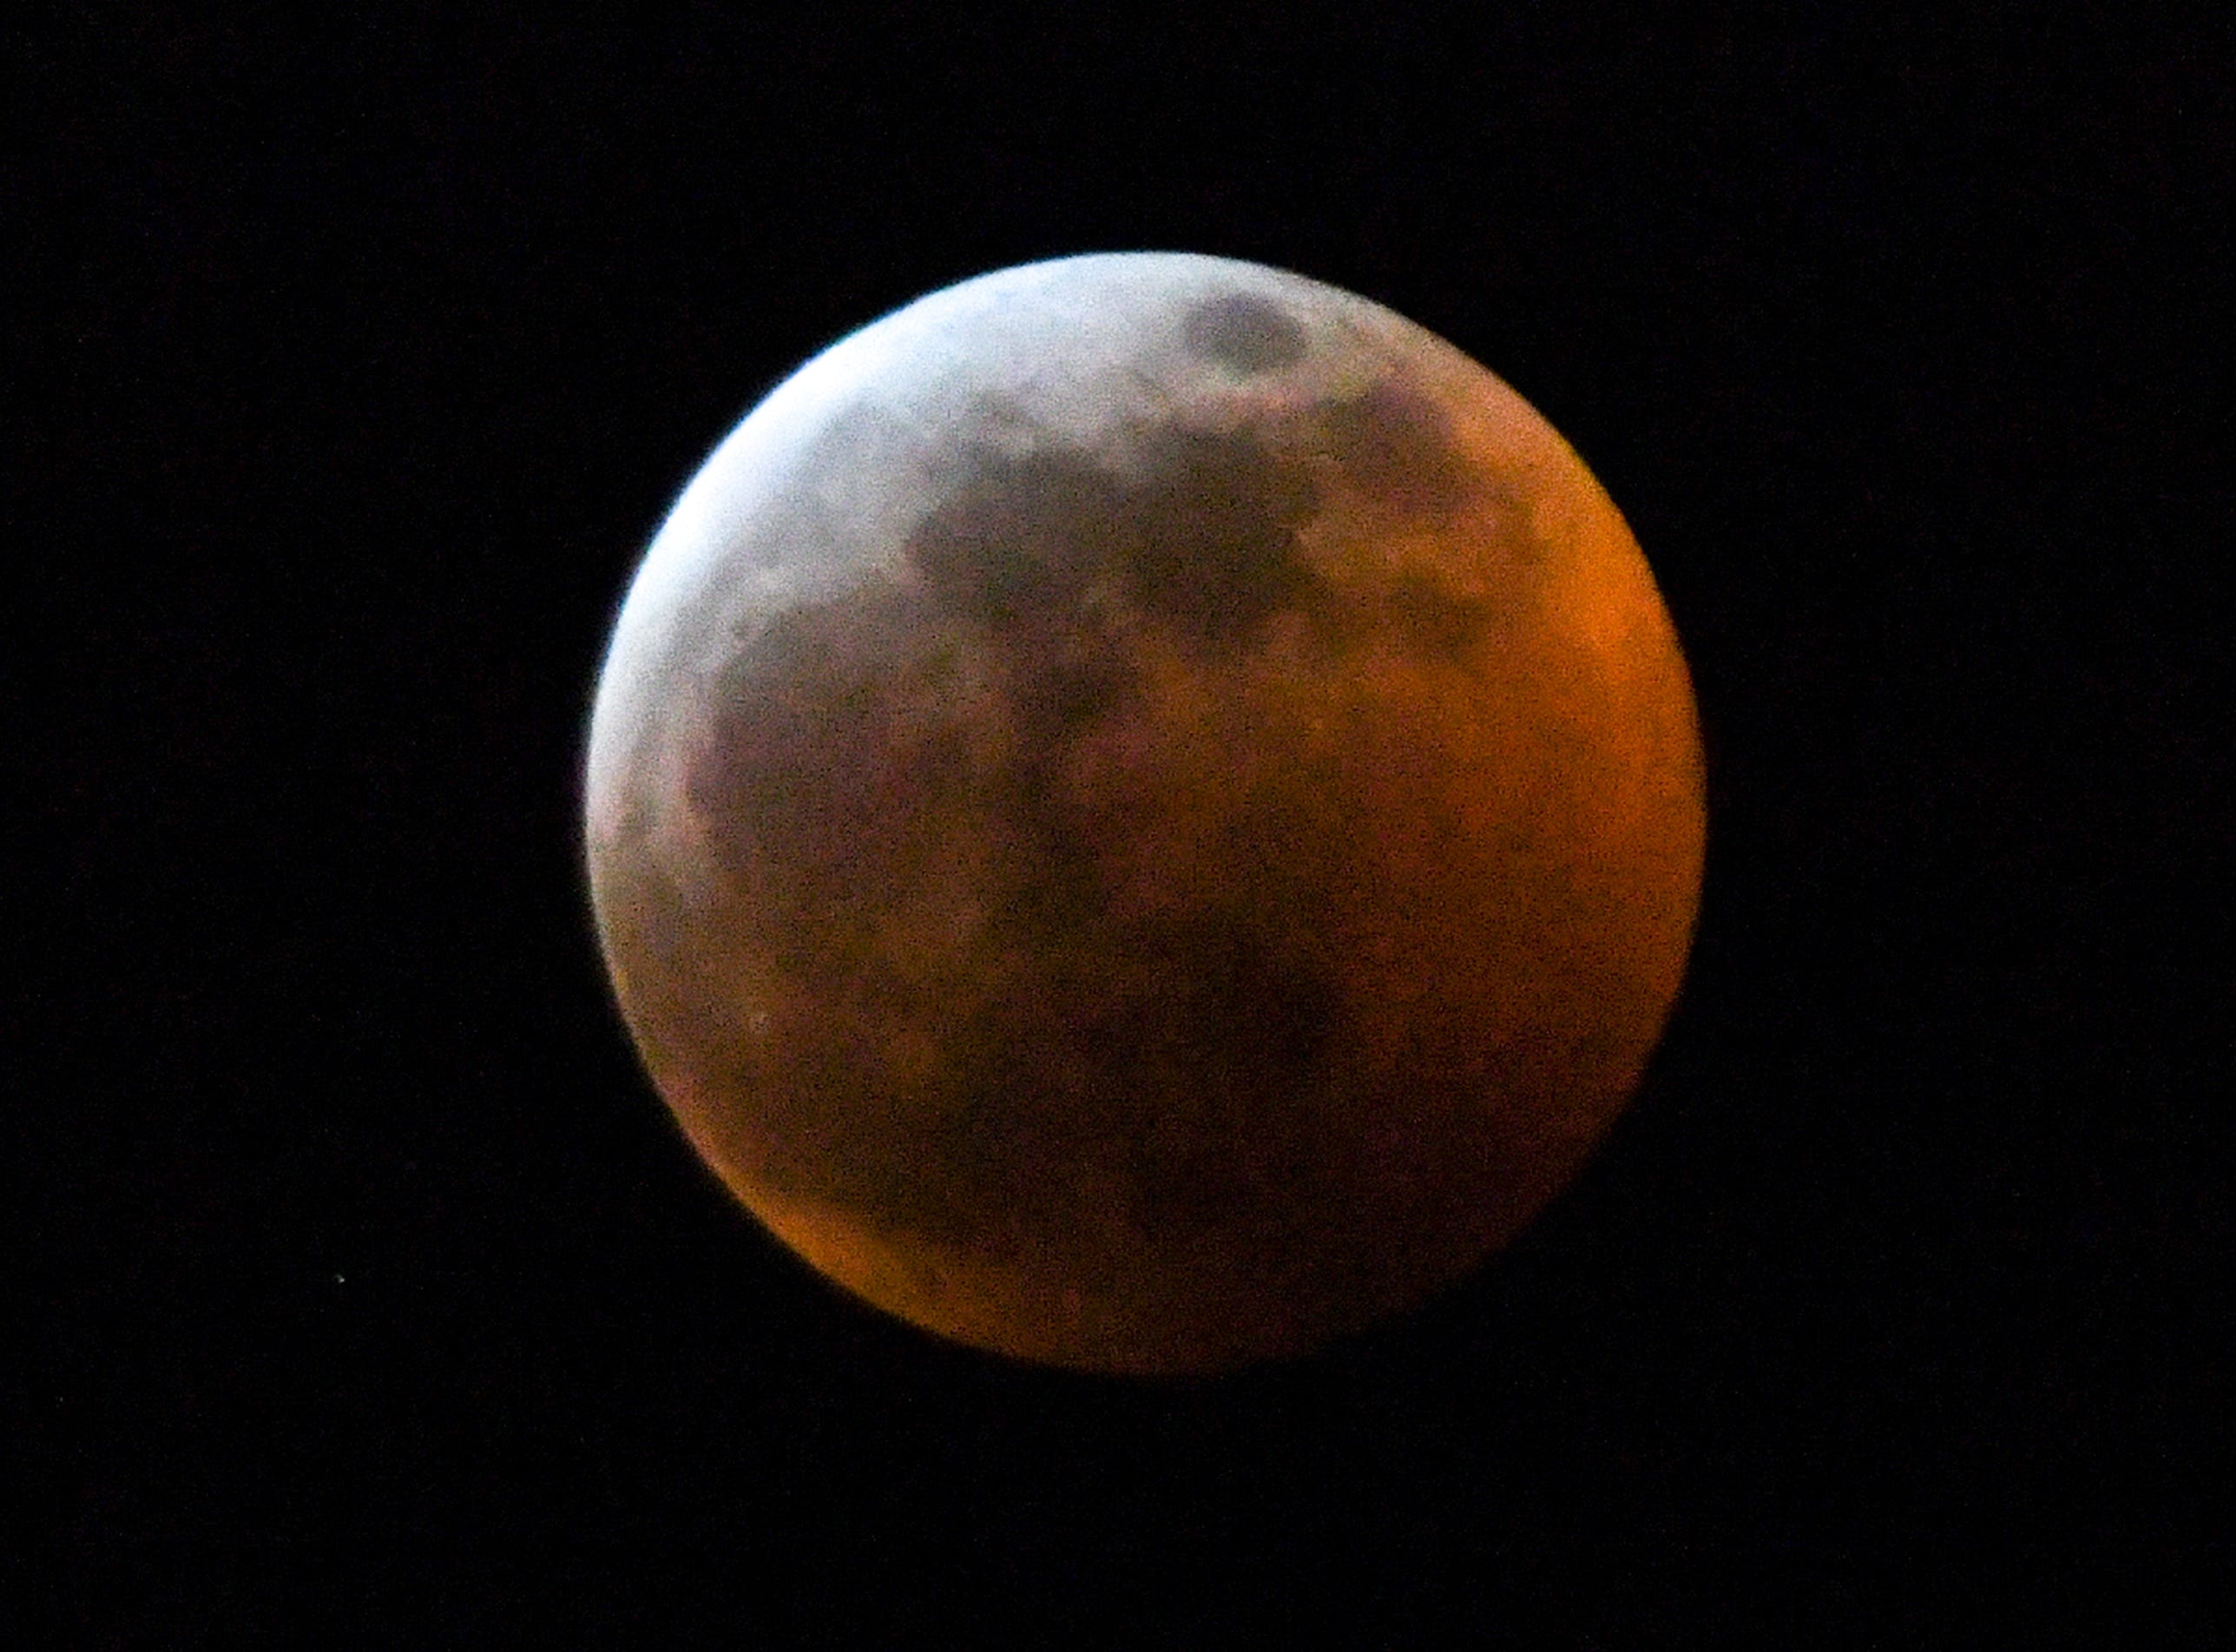 The Super blood wolf moon total lunar eclipse, at 11:58 p.m. (EST) January 20, 2019, shortly after when the moon edged into Earth's shadow and became darkened at 11:41 p.m., seen from Anderson, S.C.